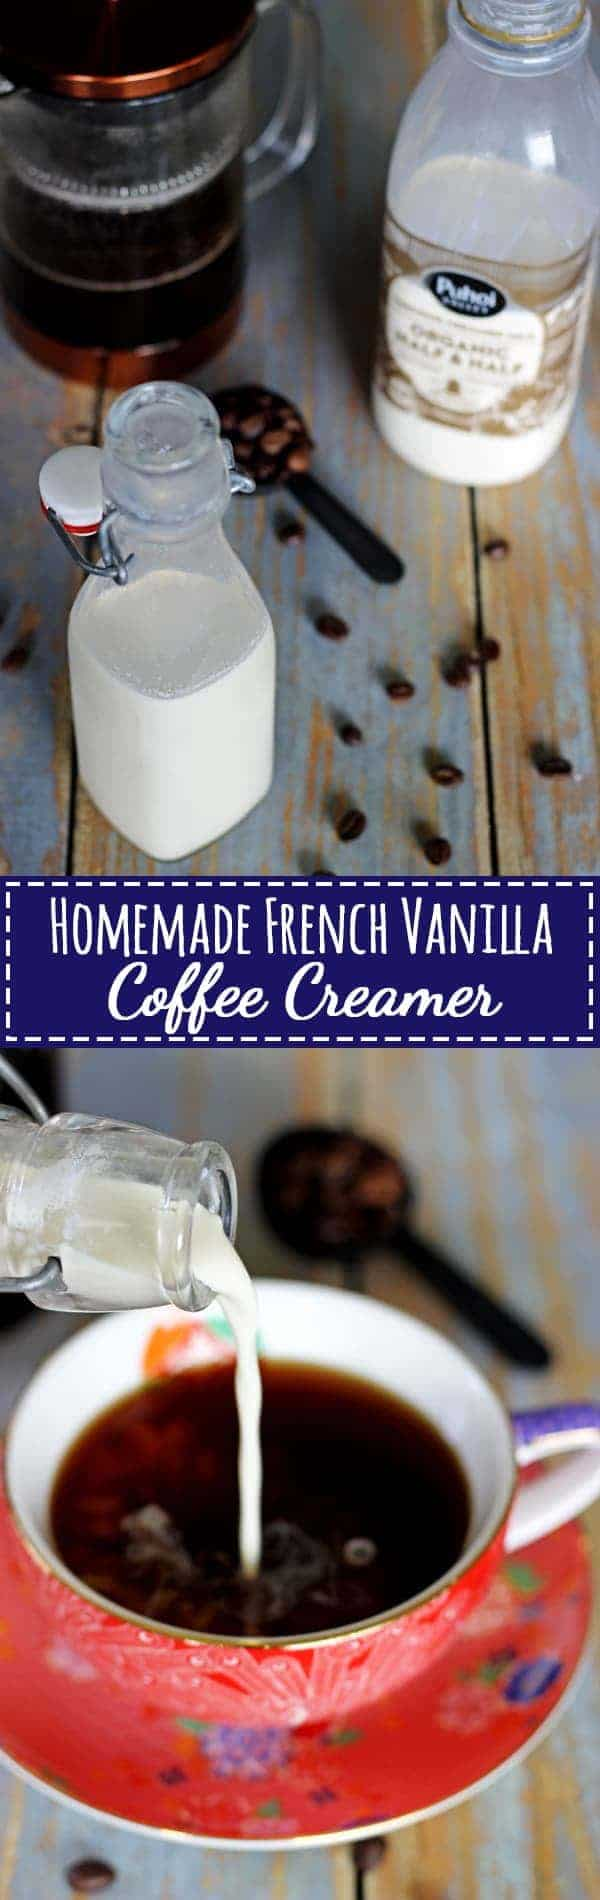 Homemade French Vanilla Coffee Creamer - the best flavour of coffee creamer just got an easy homemade twist - 3 ingredients, 2 minutes - it's the most delicious cup of coffee ever! | thekiwicountrygirl.com